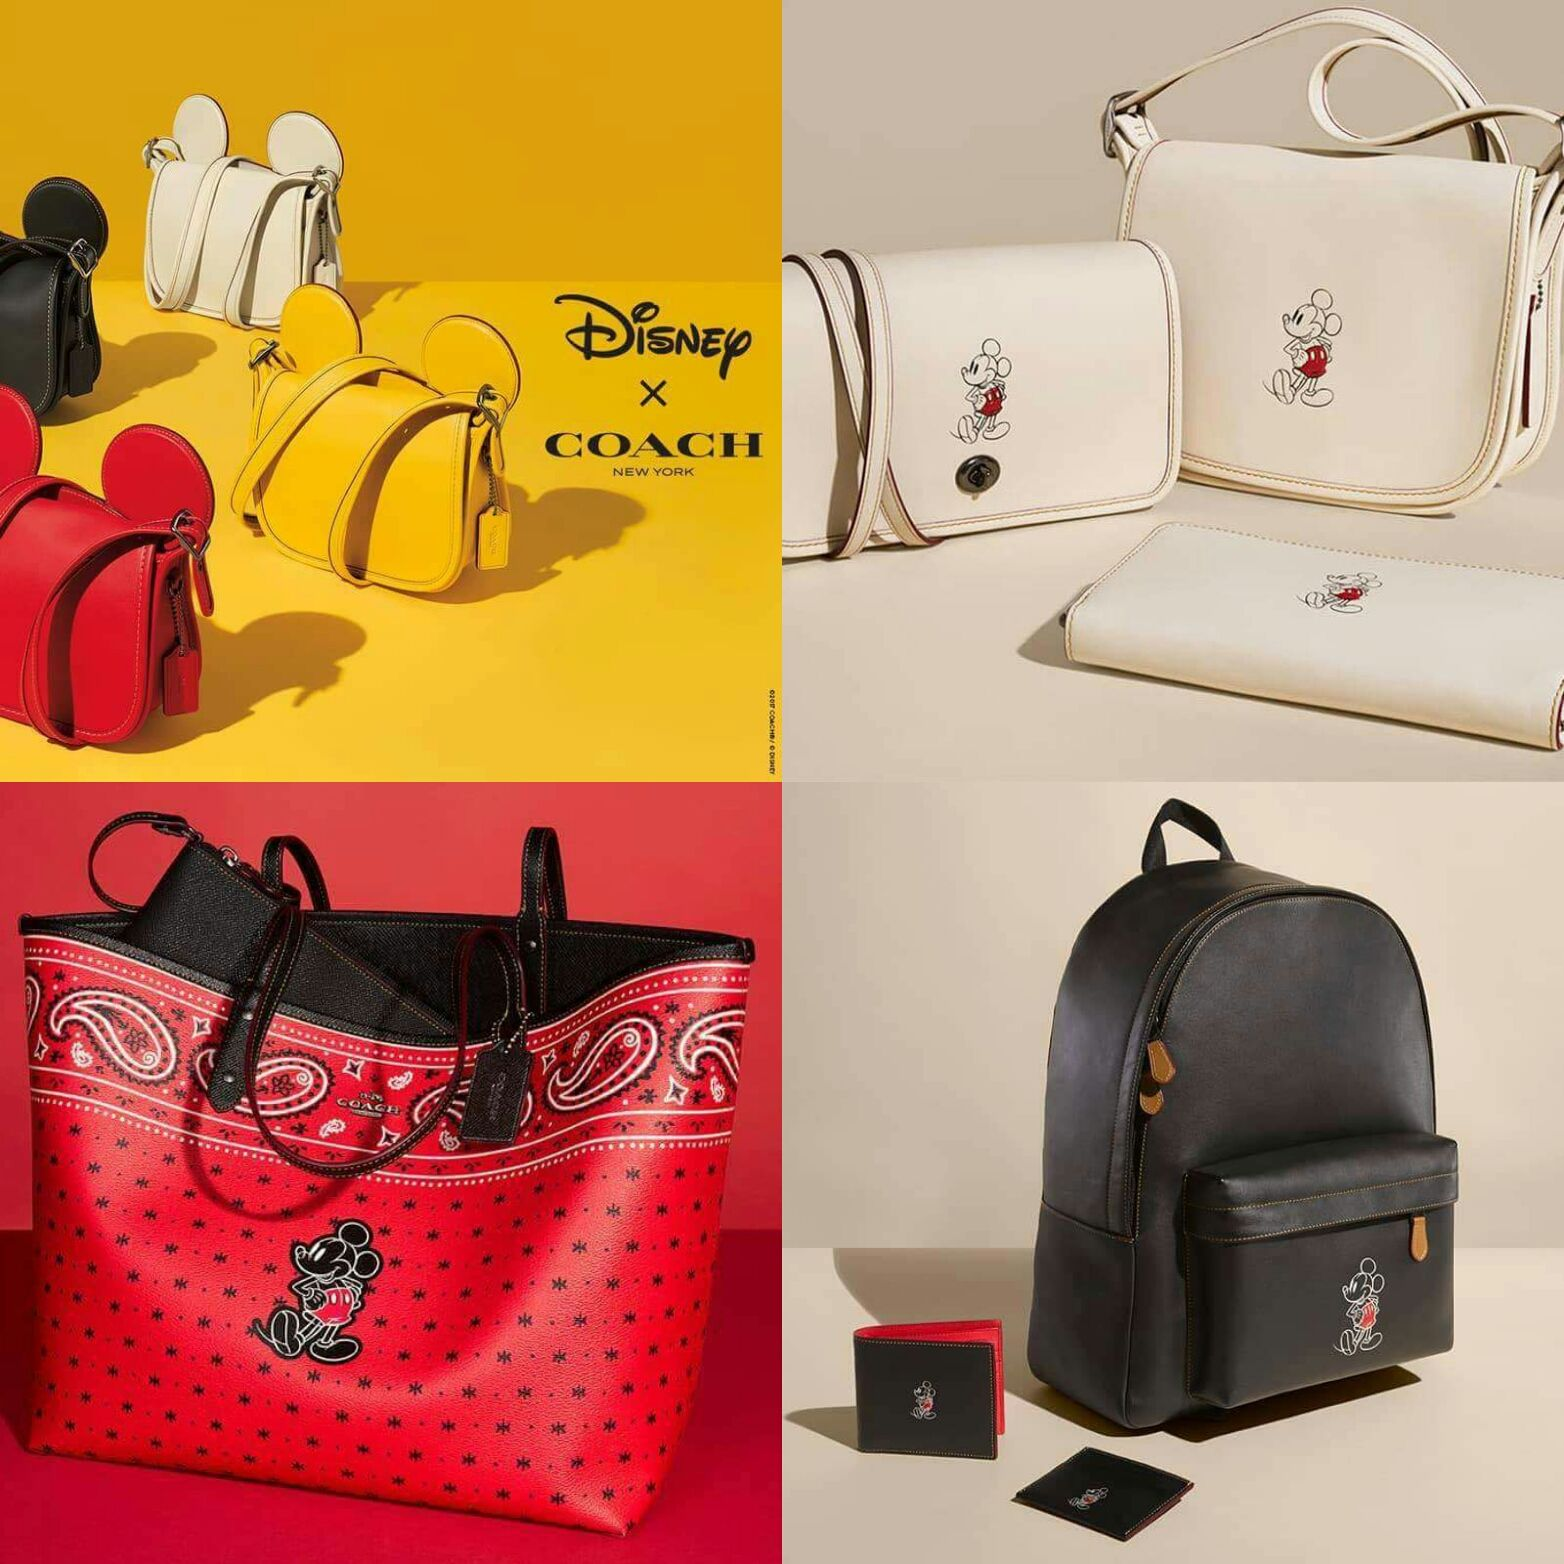 58d1cab18f5 Disney x Coach  Outlet Edition to Be Released May 15th!   Twinning ...